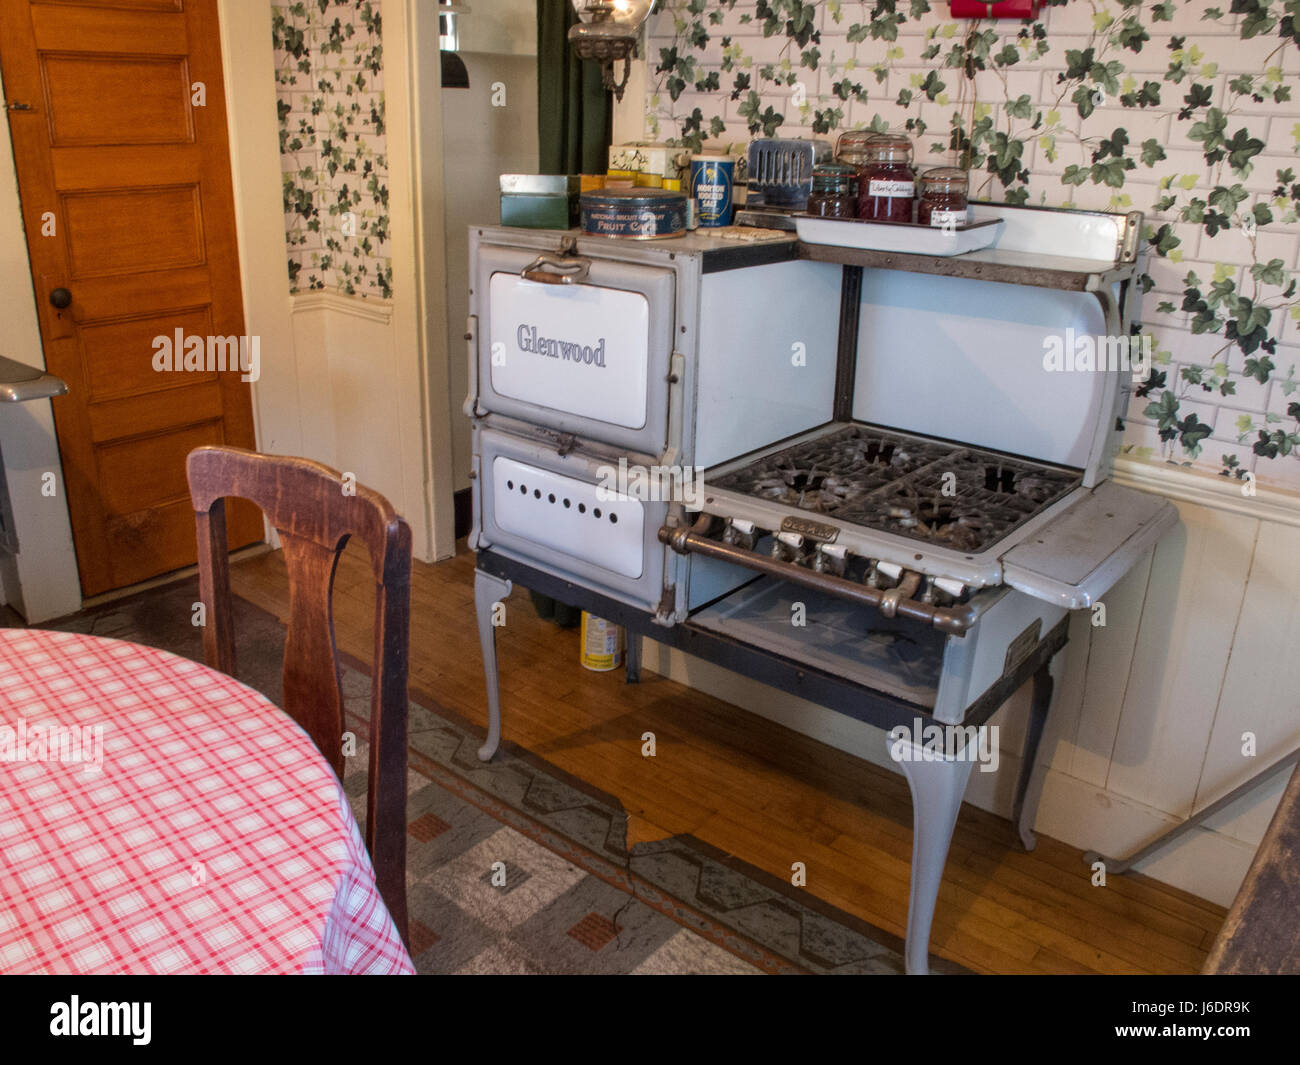 Old stove in The Little Corner Store in Strawbery Banke in Portsmouth, New Hampshire - Stock Image